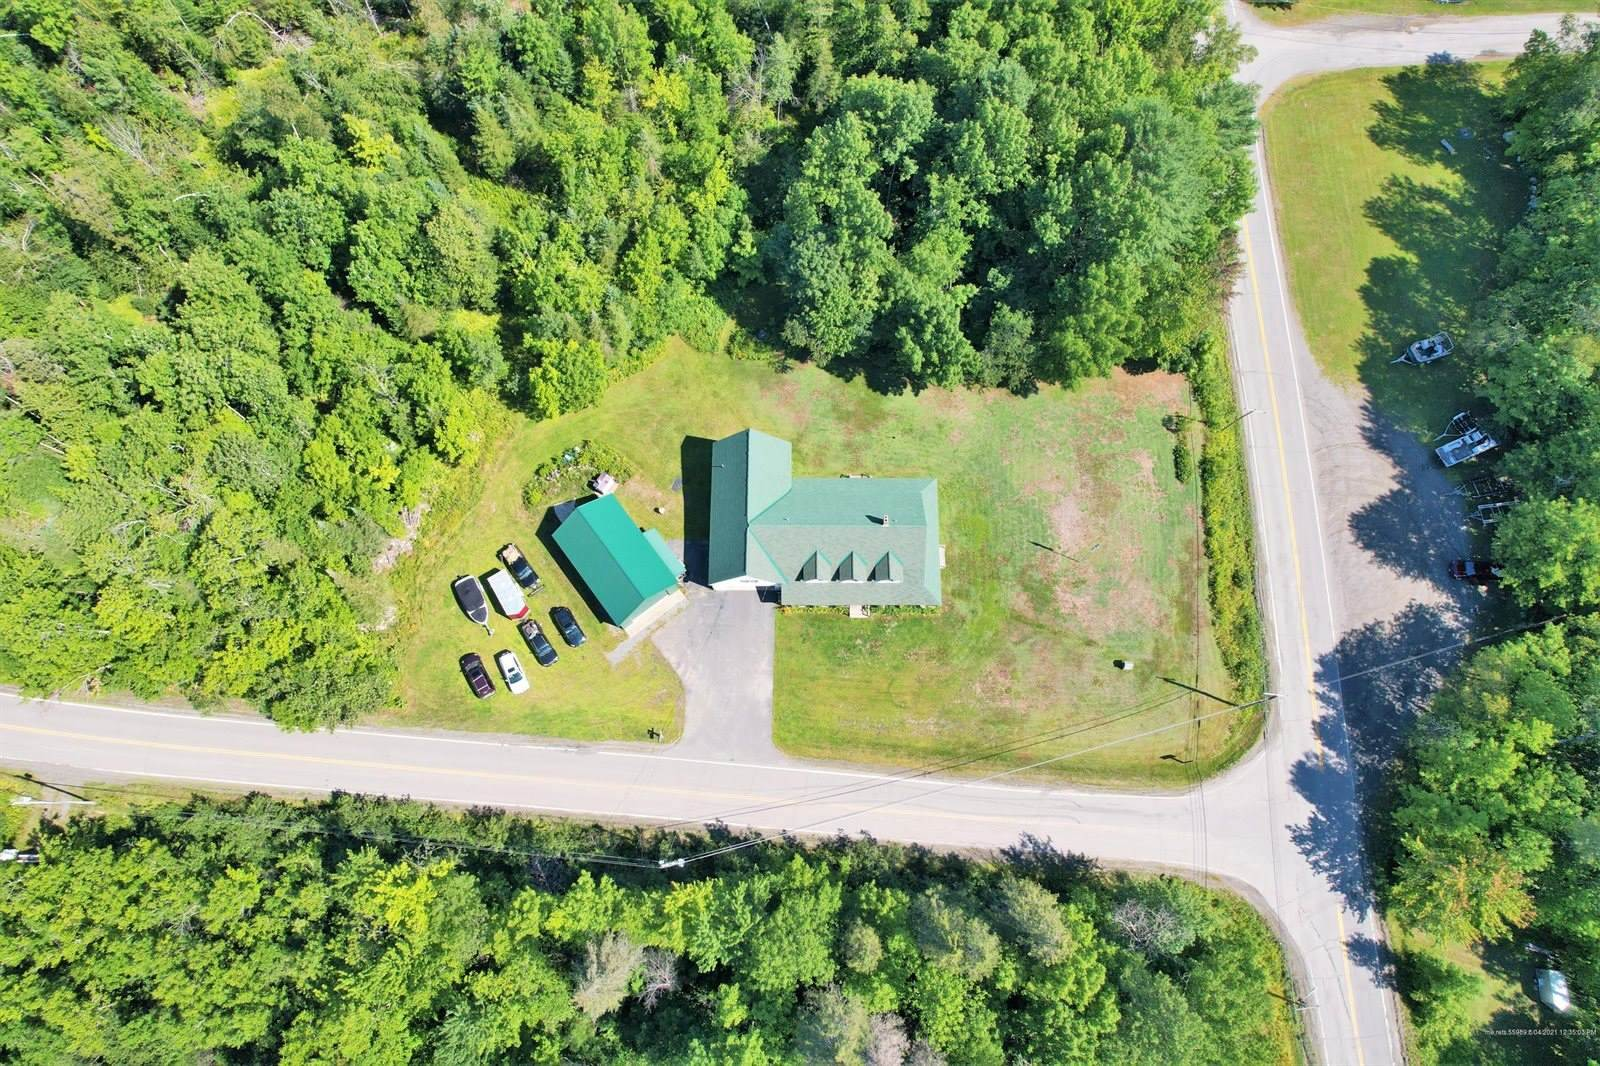 9 State Park Road, Dover Foxcroft, ME 04426